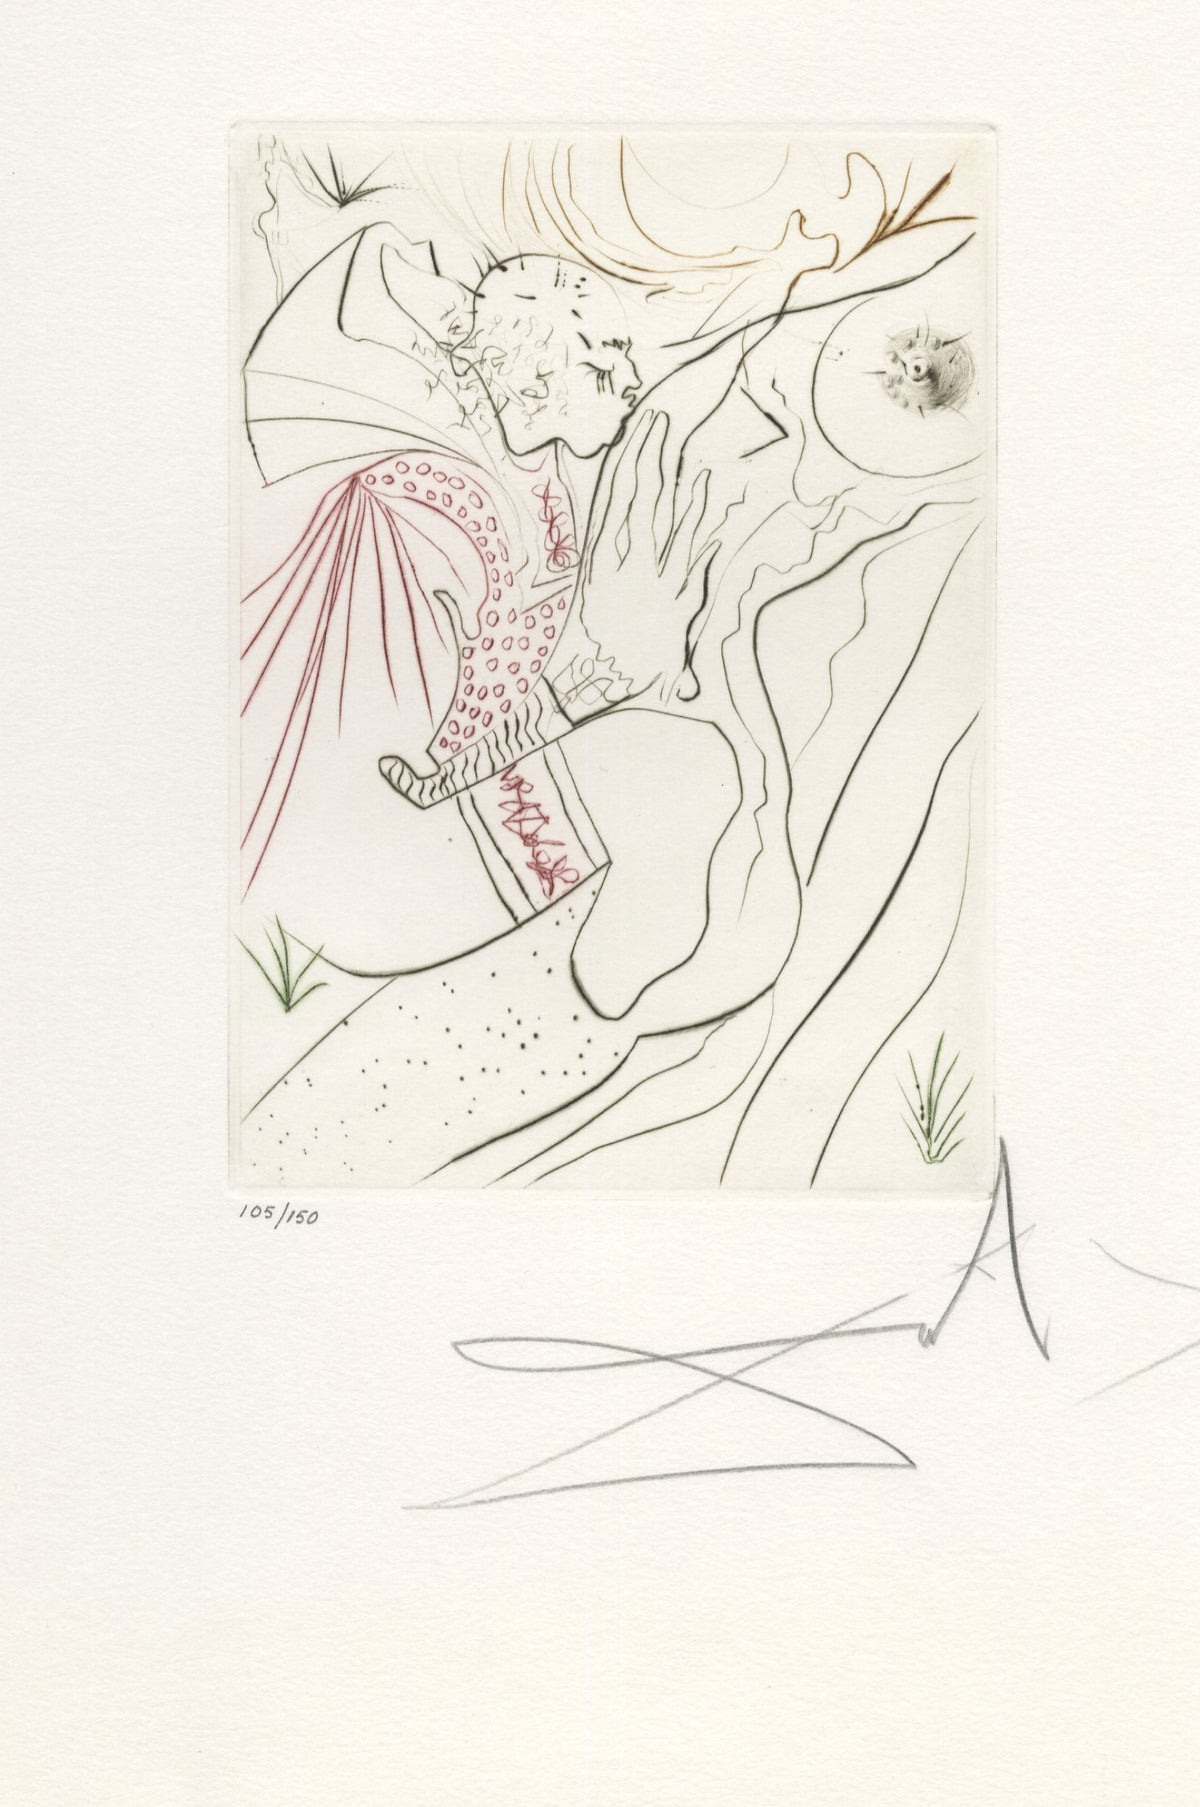 Salvador Dalí - Signed 1972 Limited Edition Engraving - 12.5 x 17.75""